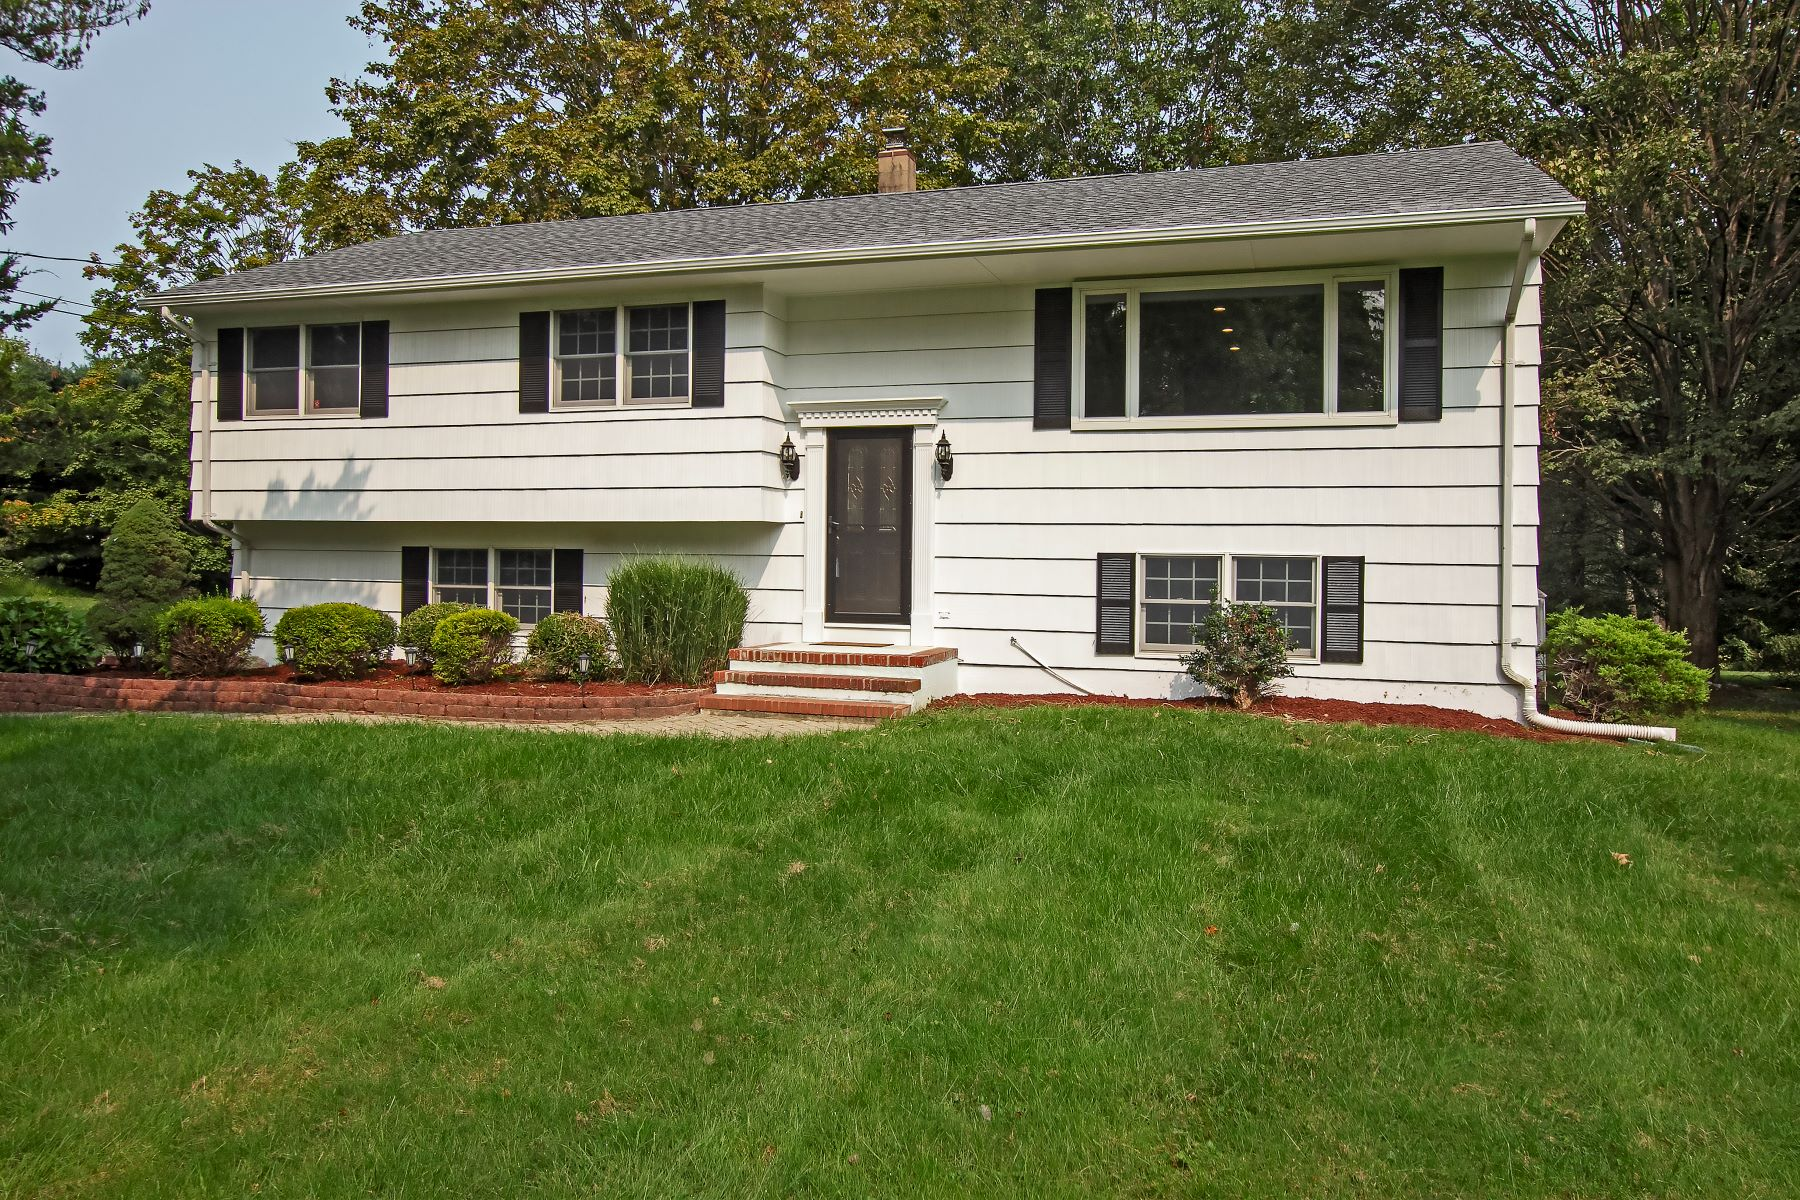 Single Family Homes for Sale at Tastefully Updated! 27 Ironia Road, Chester, New Jersey 07930 United States